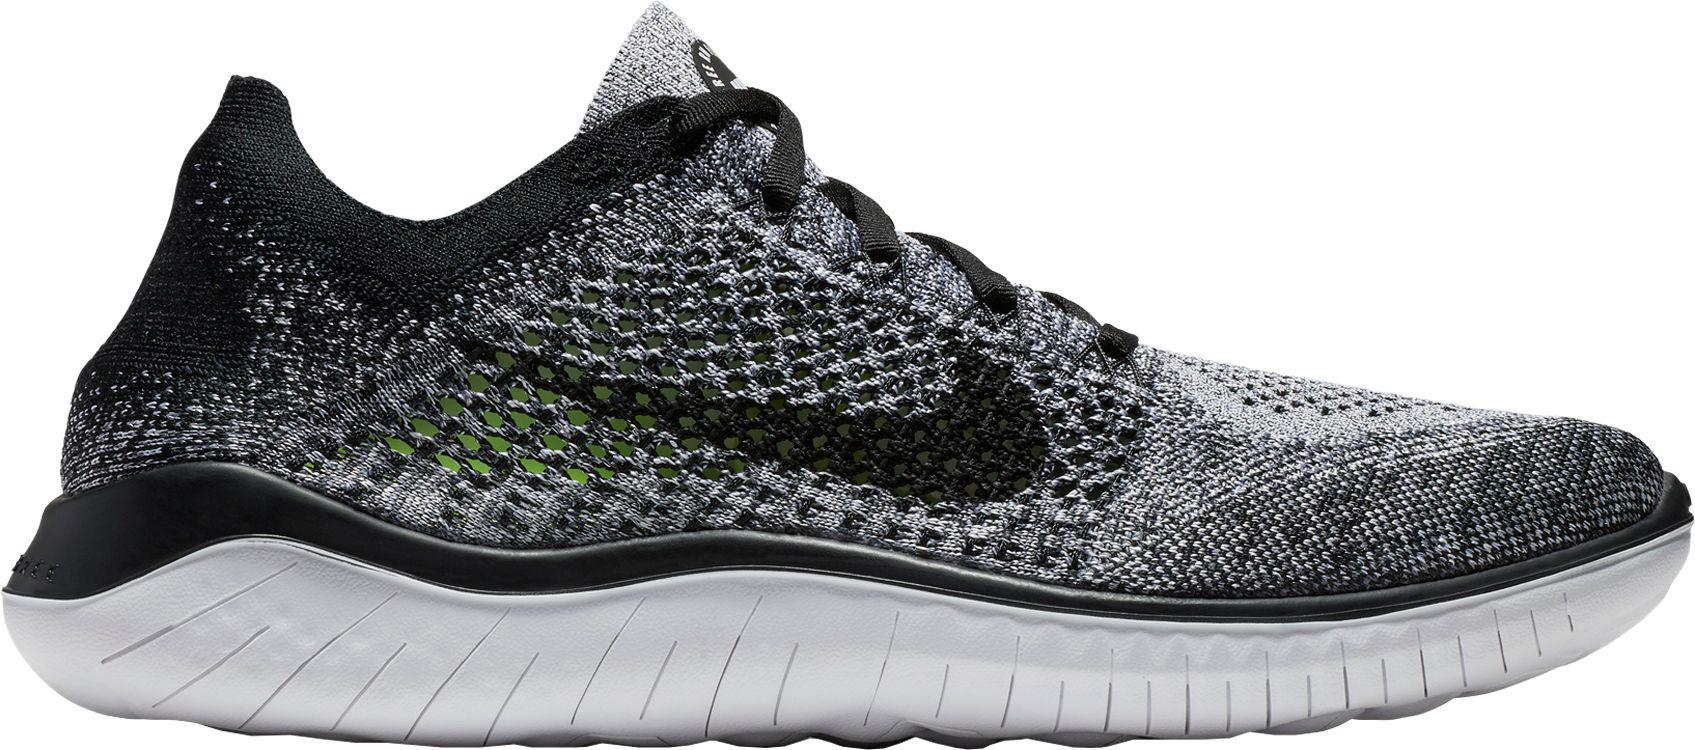 3338c666509bf Lyst - Nike Free Rn Flyknit 2018 Running Shoes in Black for Men